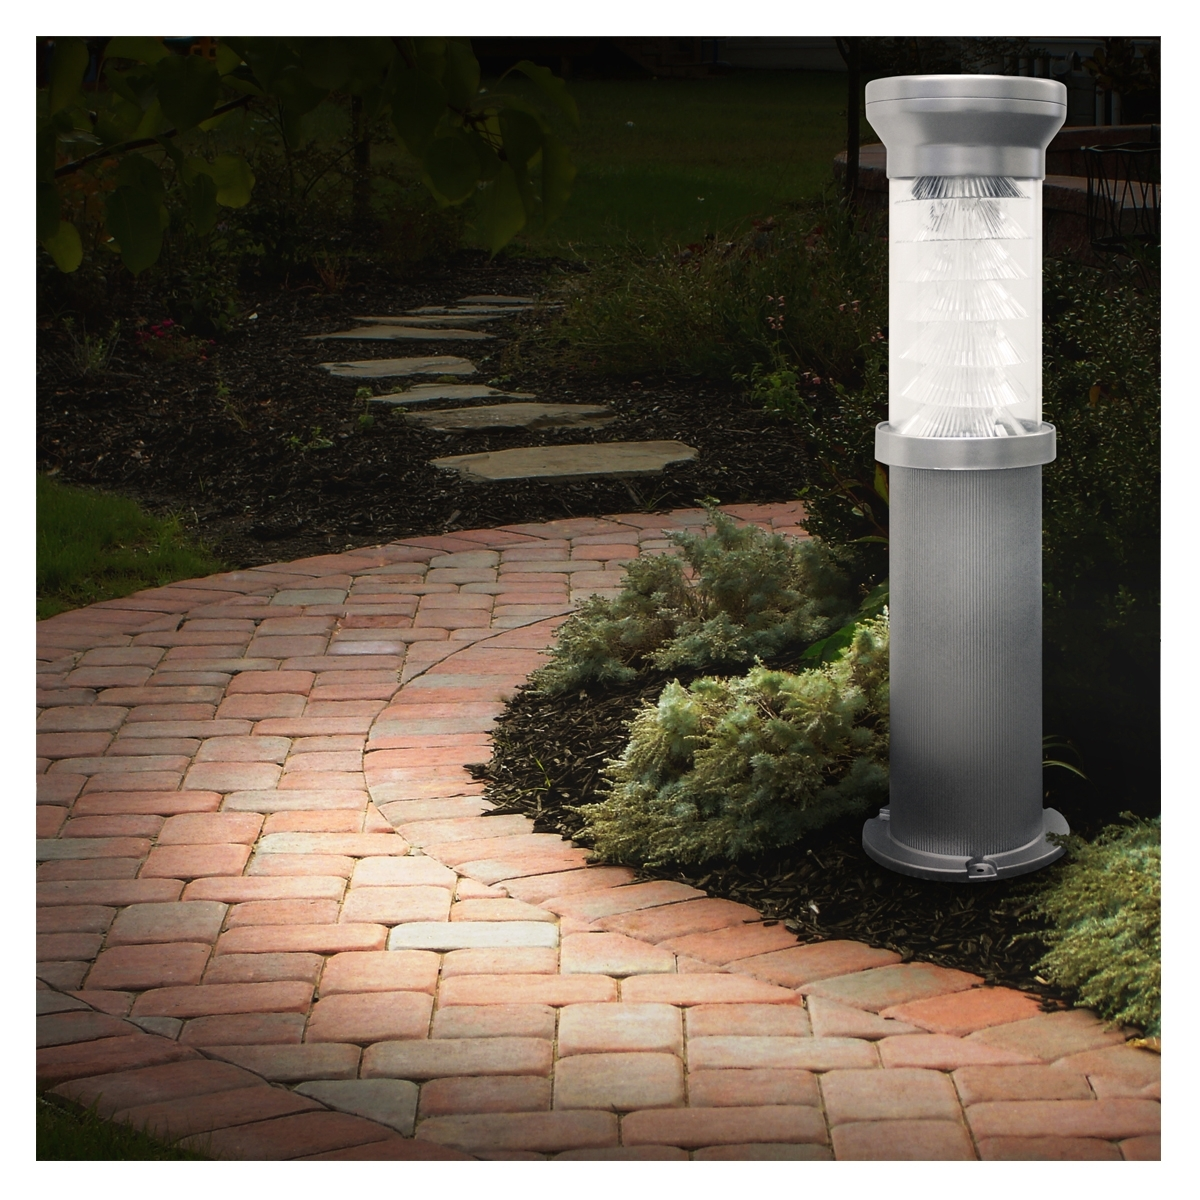 Solar Bollard Lights | Solar Path And Driveway Lights Gsg2-127Ez - 2 inside Outdoor Driveway Lanterns (Image 17 of 20)